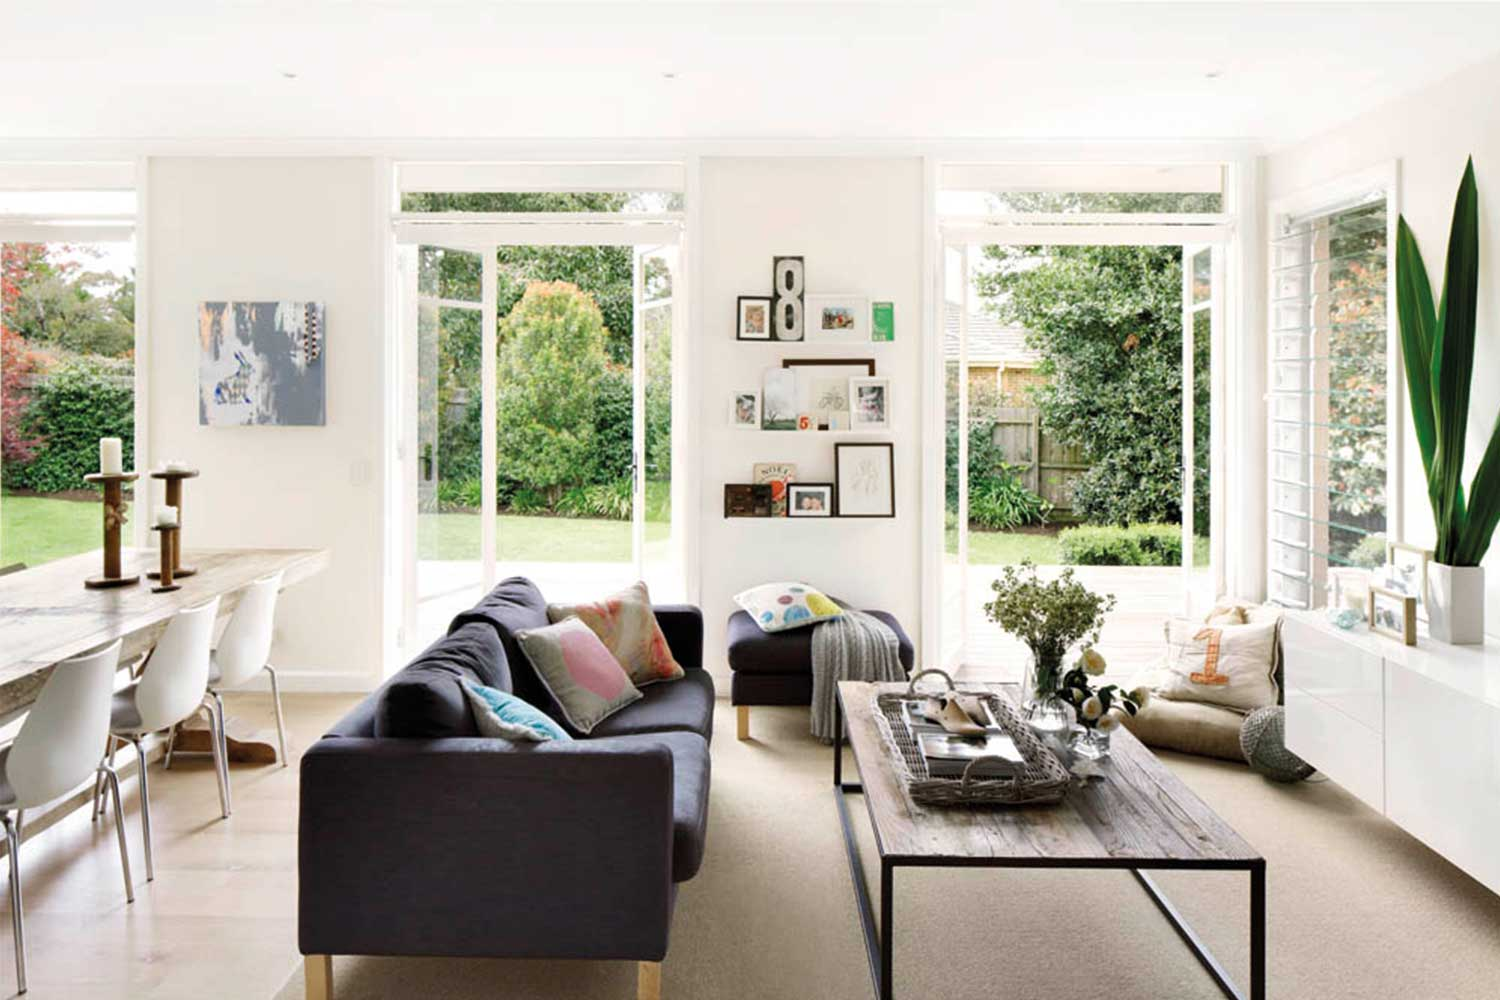 20 coffee table ideas to pull your whole living room together | Home ...